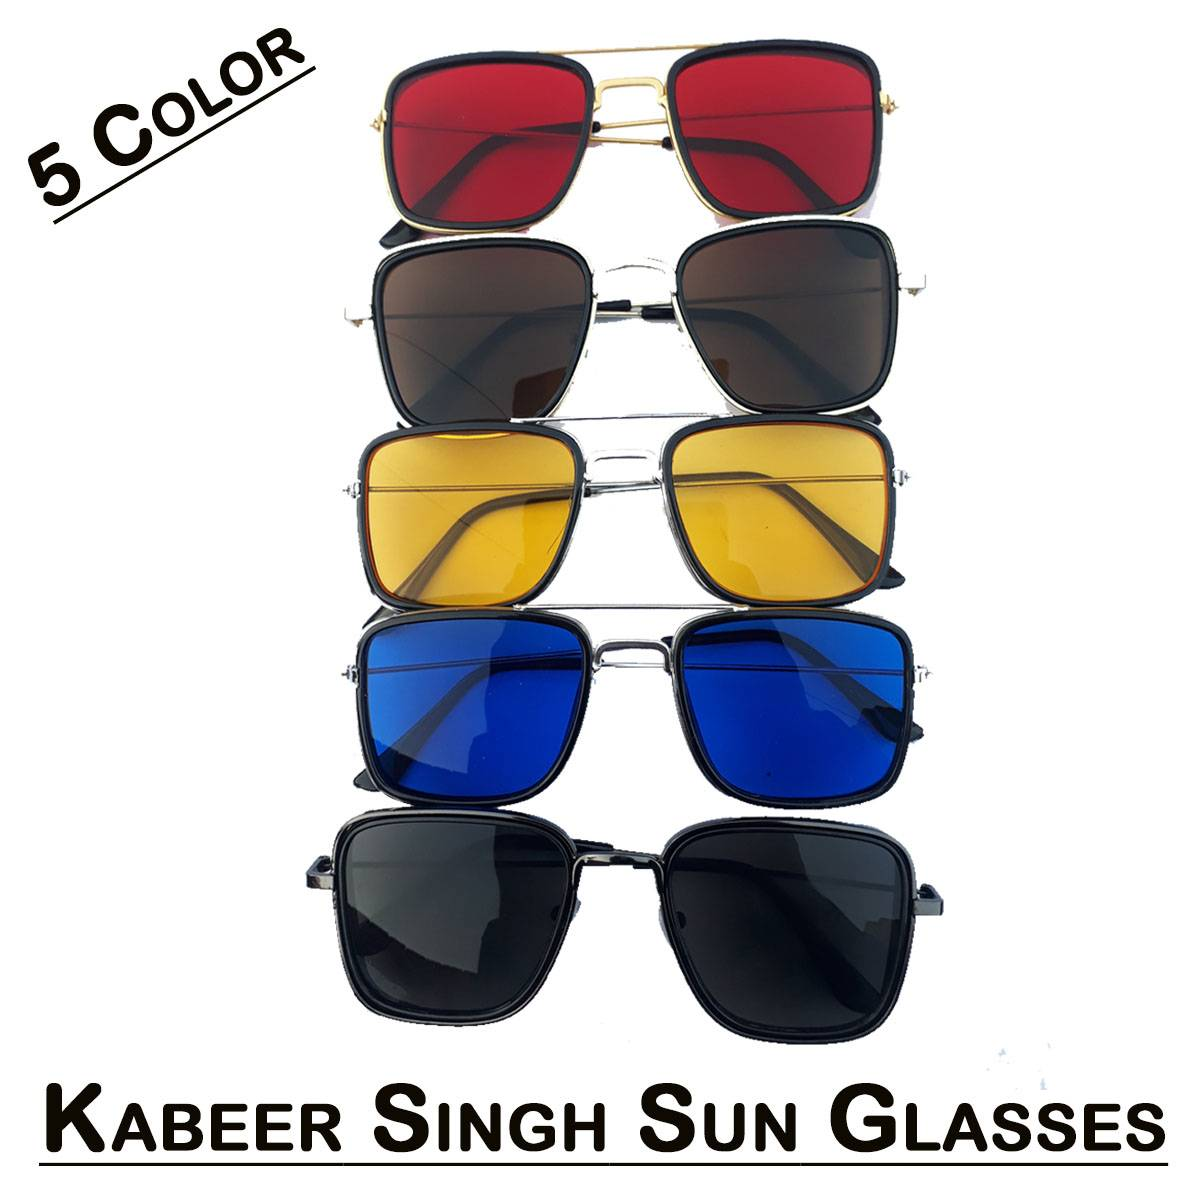 Fashion Sun Glasses for Men With Kabir Singh Shaped Eye Wear for Daily Use